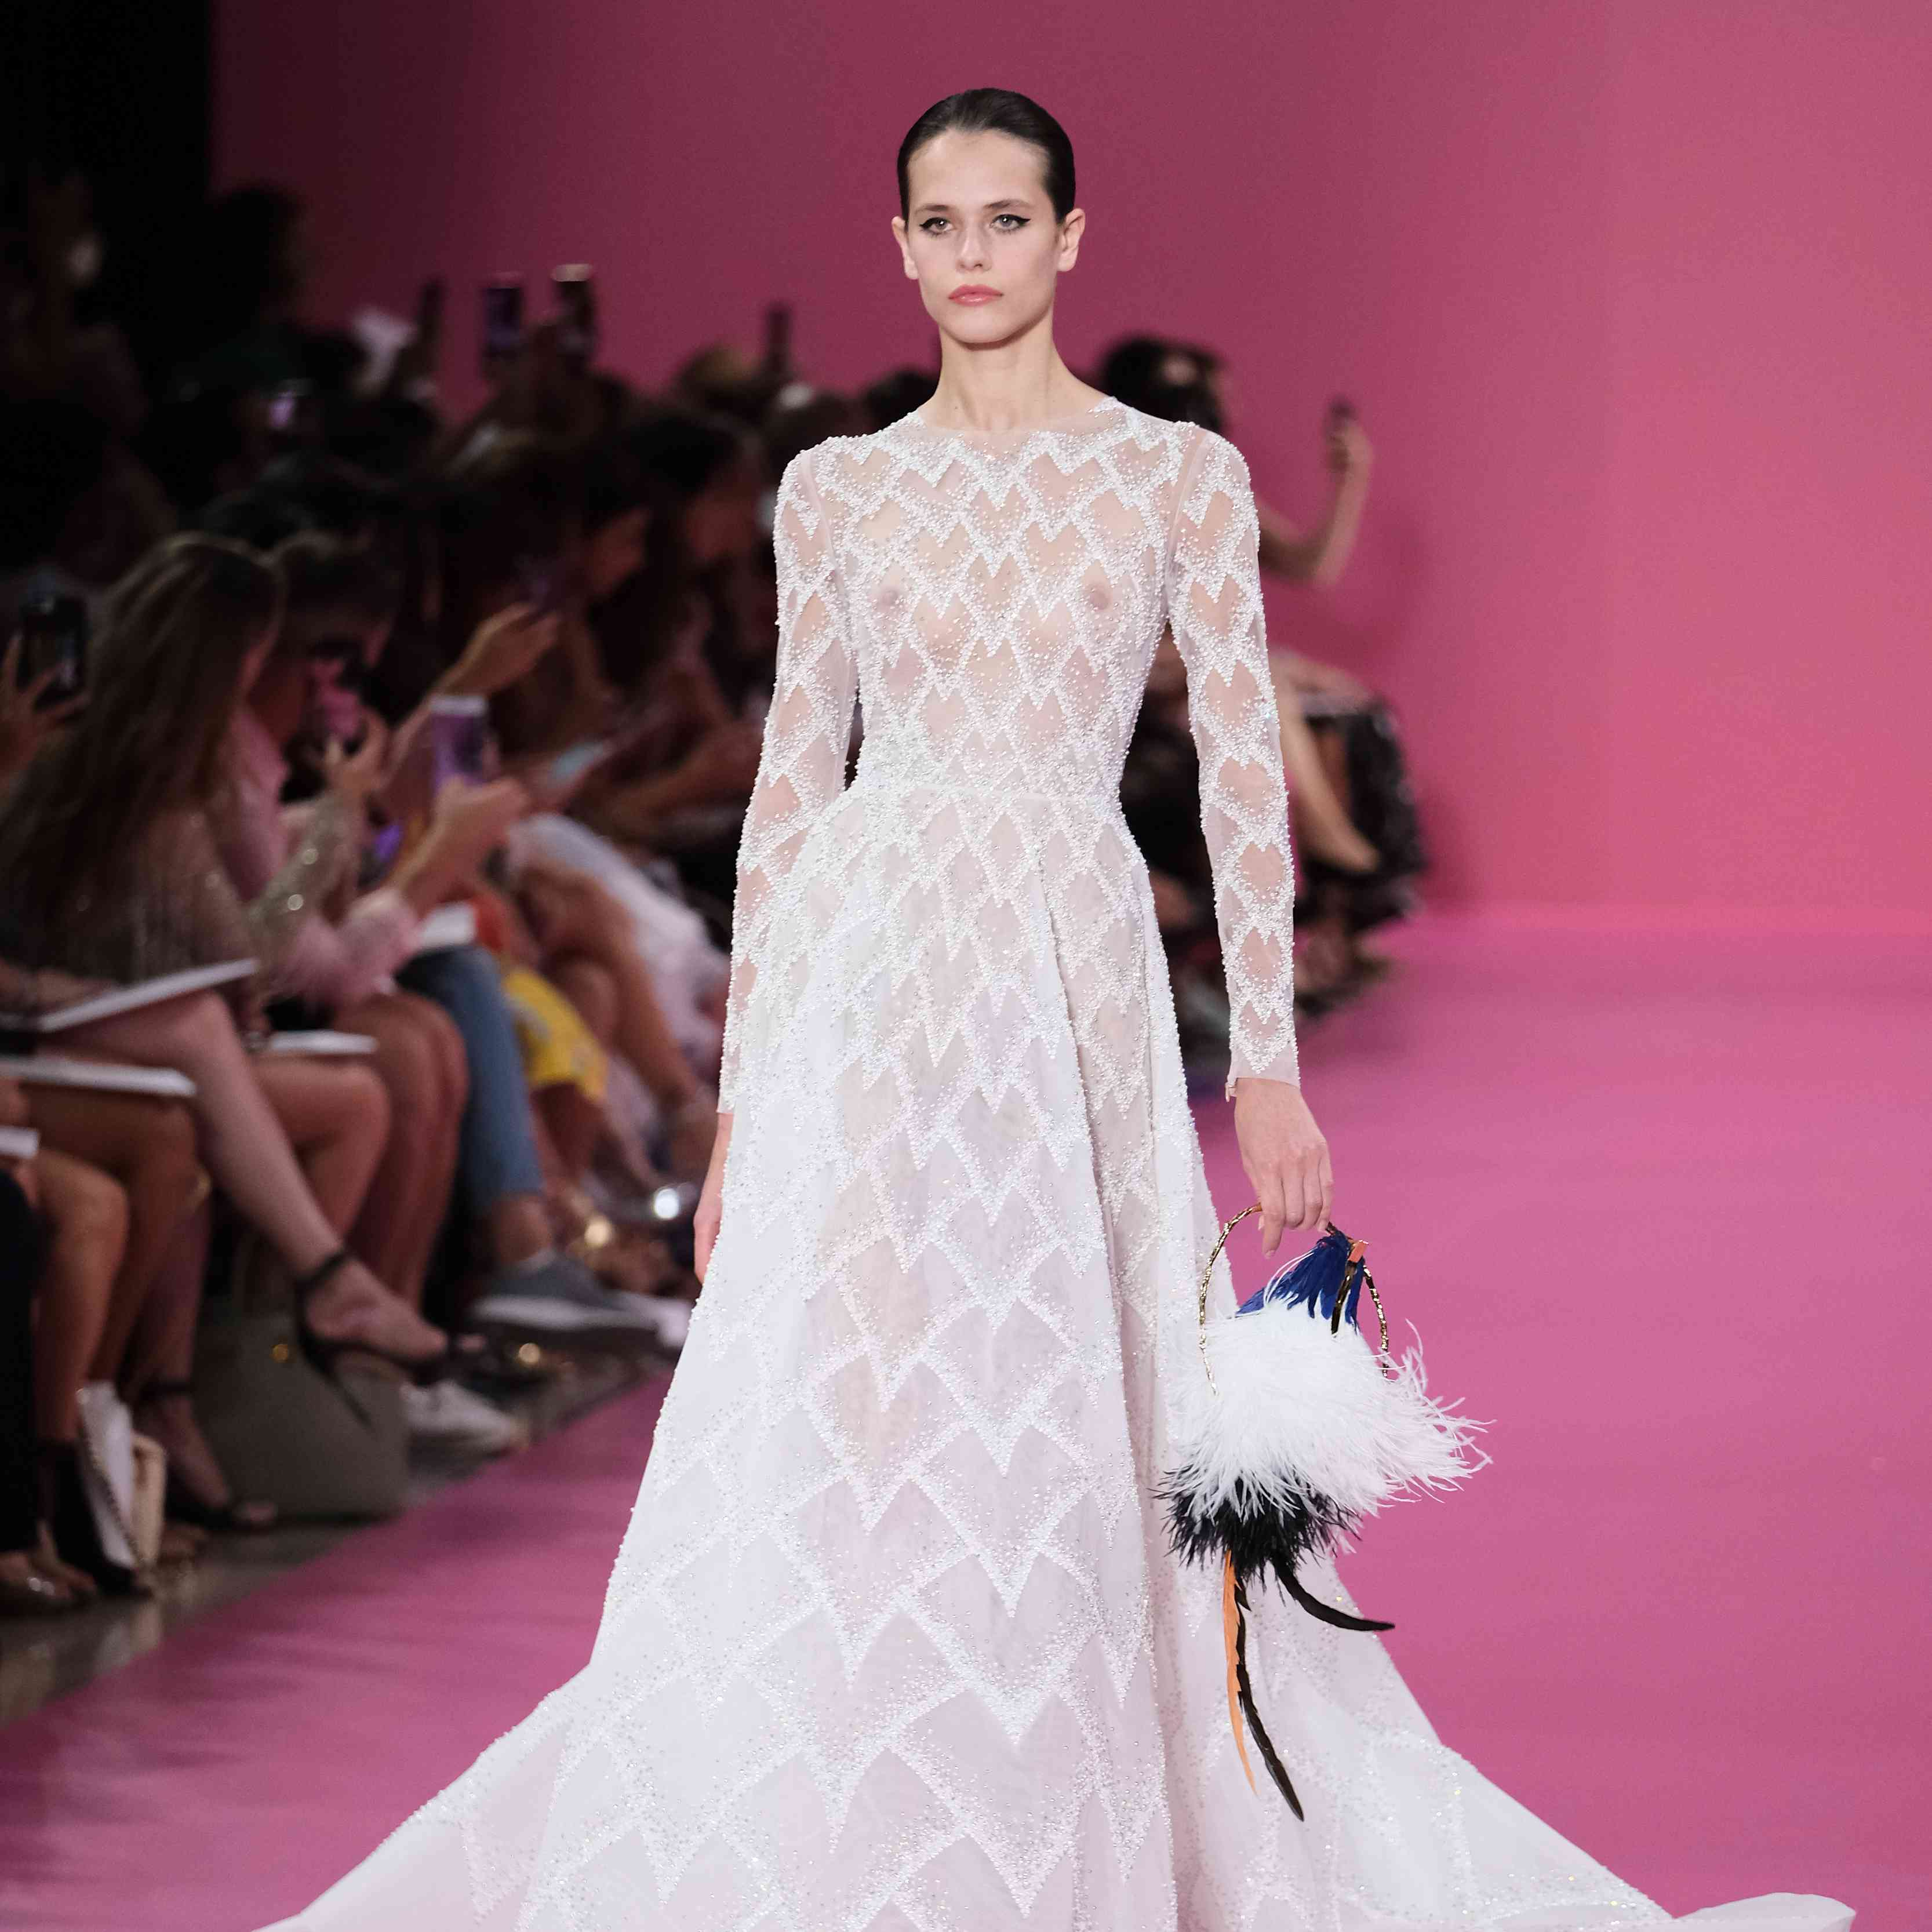 Model in long-sleeved sheer lace white wedding gown